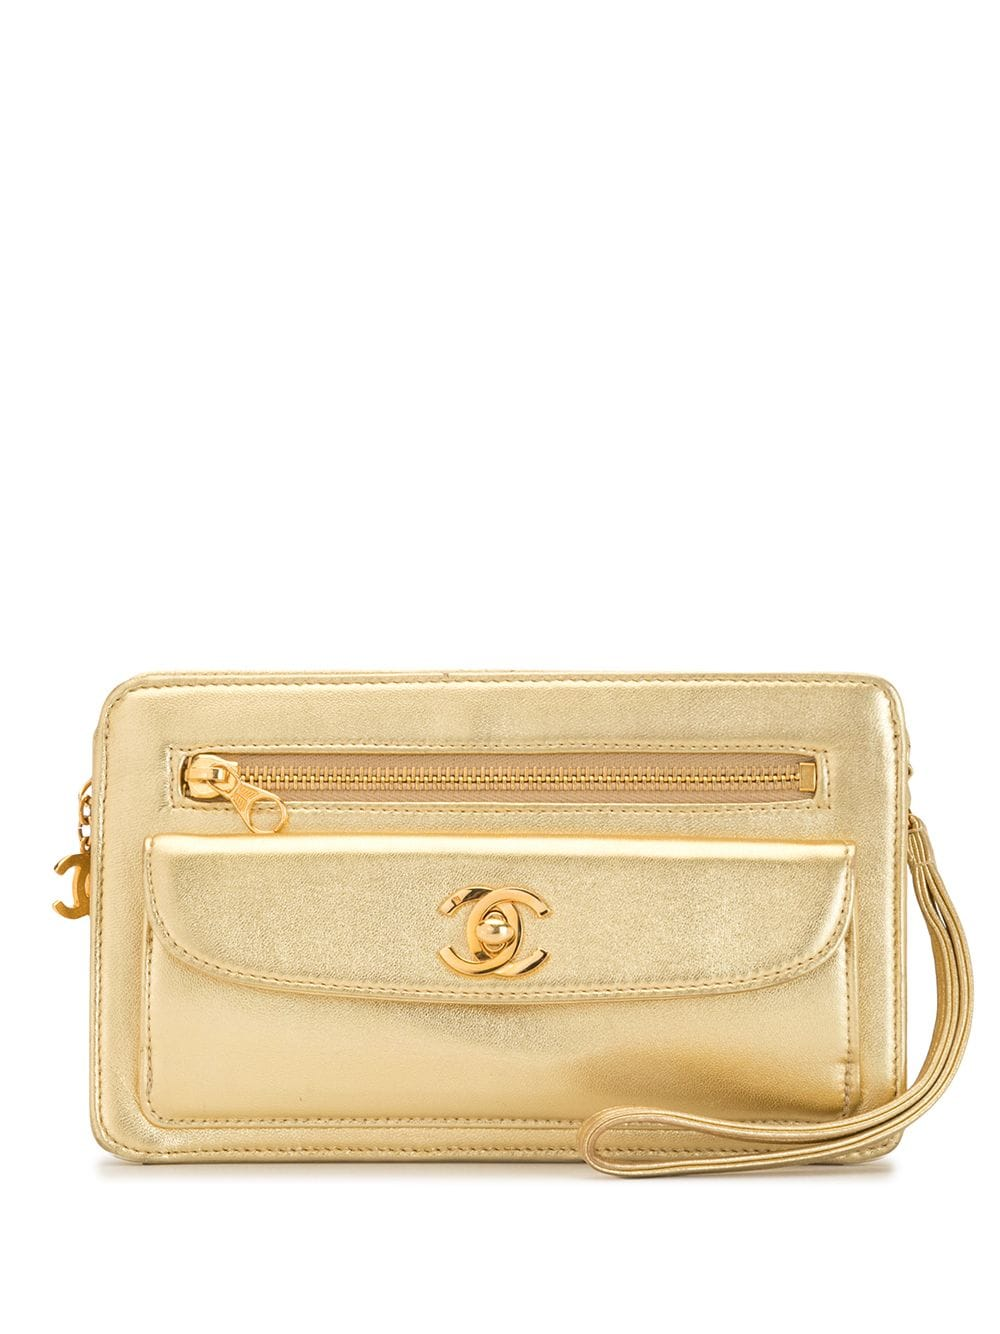 Chanel Pre-Owned 1997 Clutch - Gold